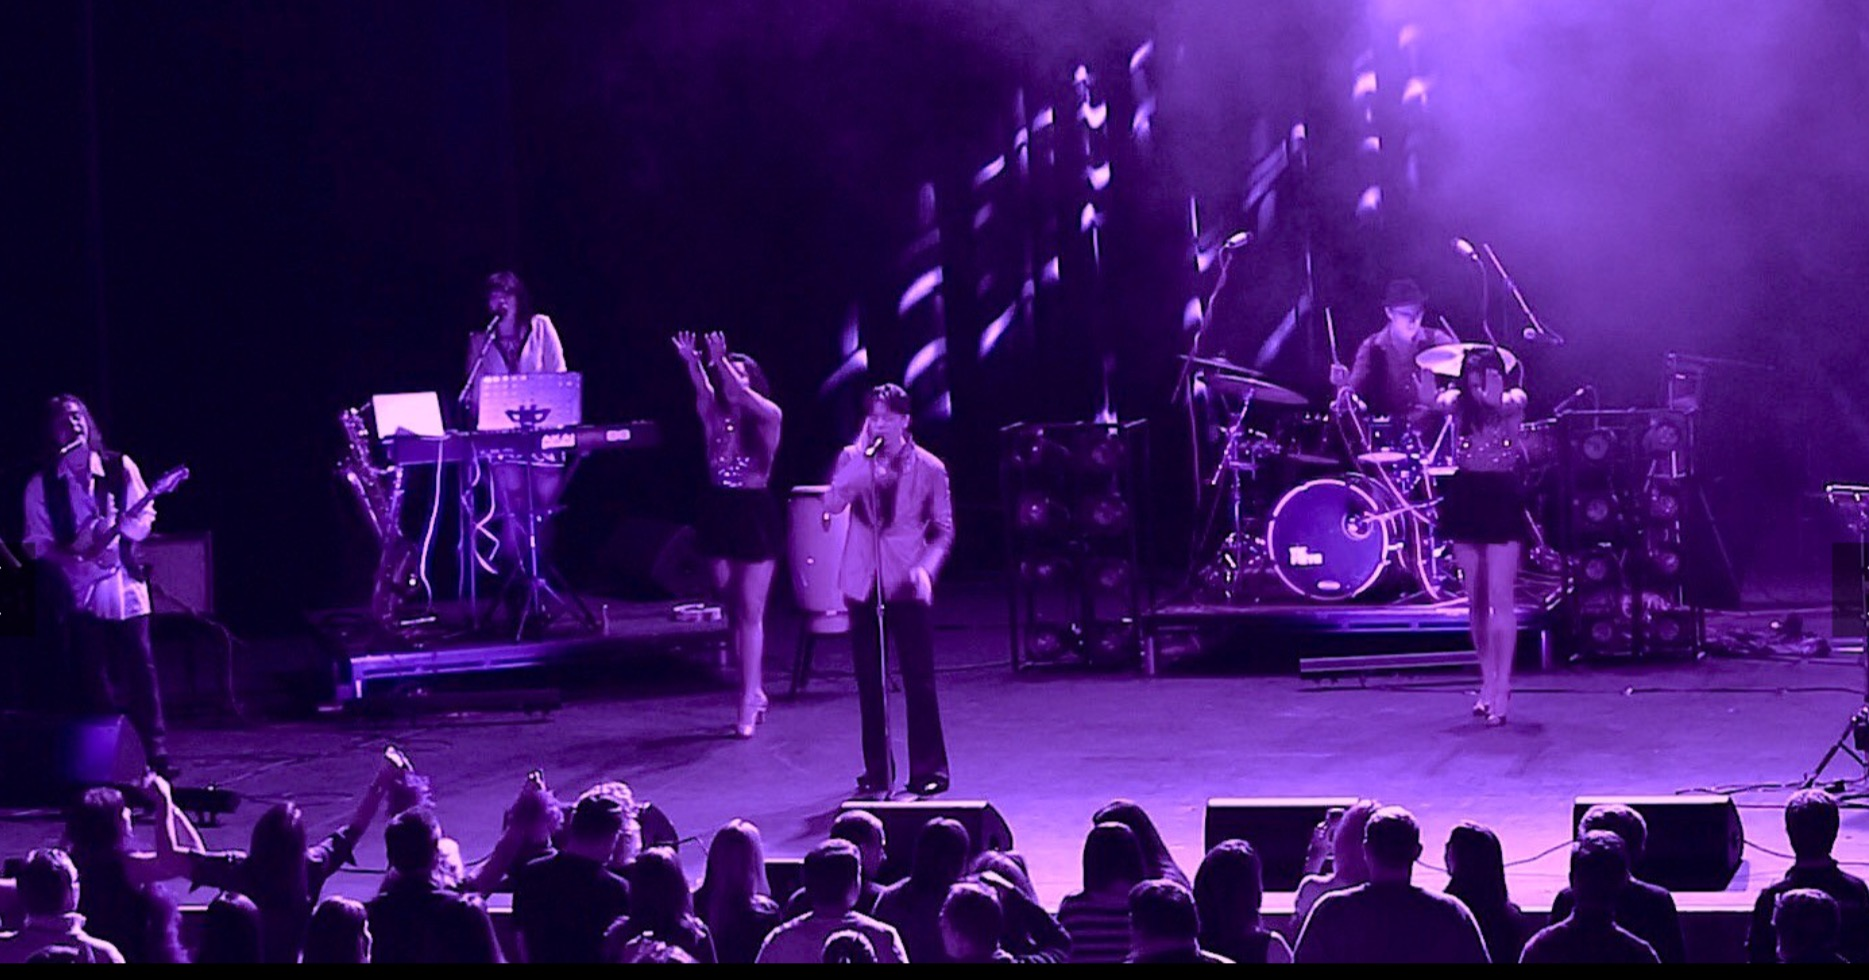 Prince` Live On Stage With His Band